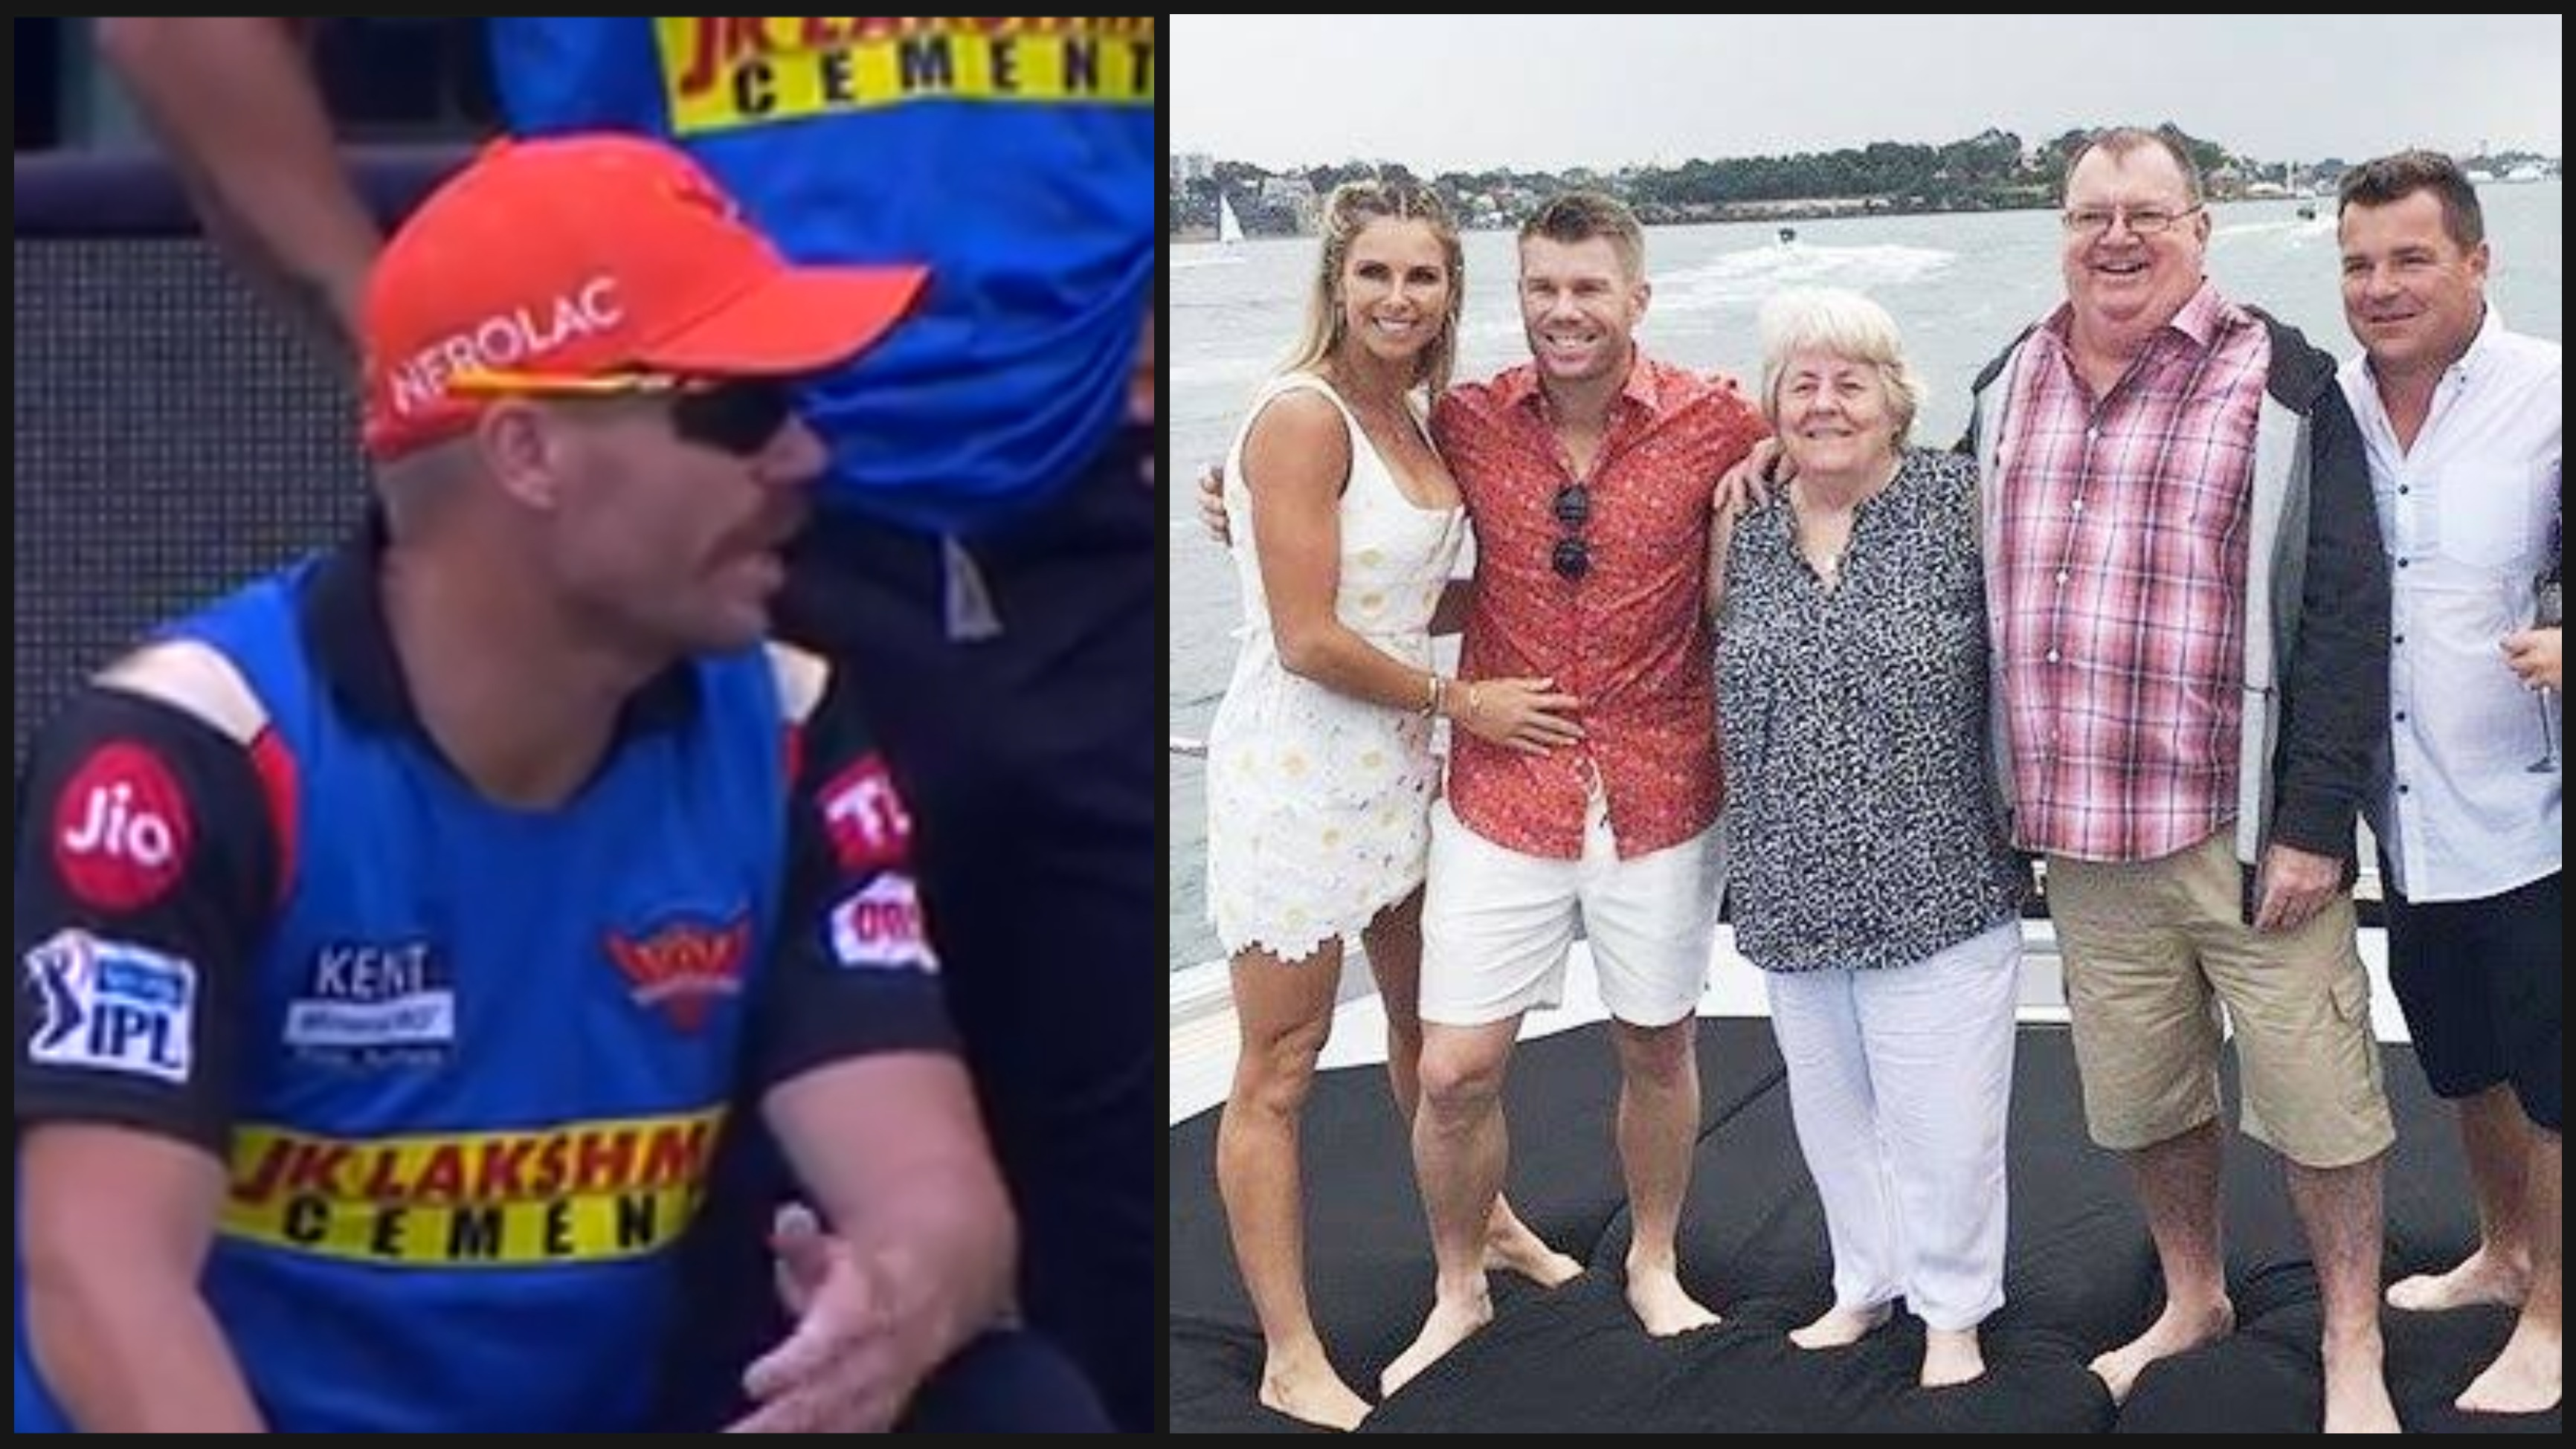 Instagram post of David Warner's brother goes viral after SRH drop him